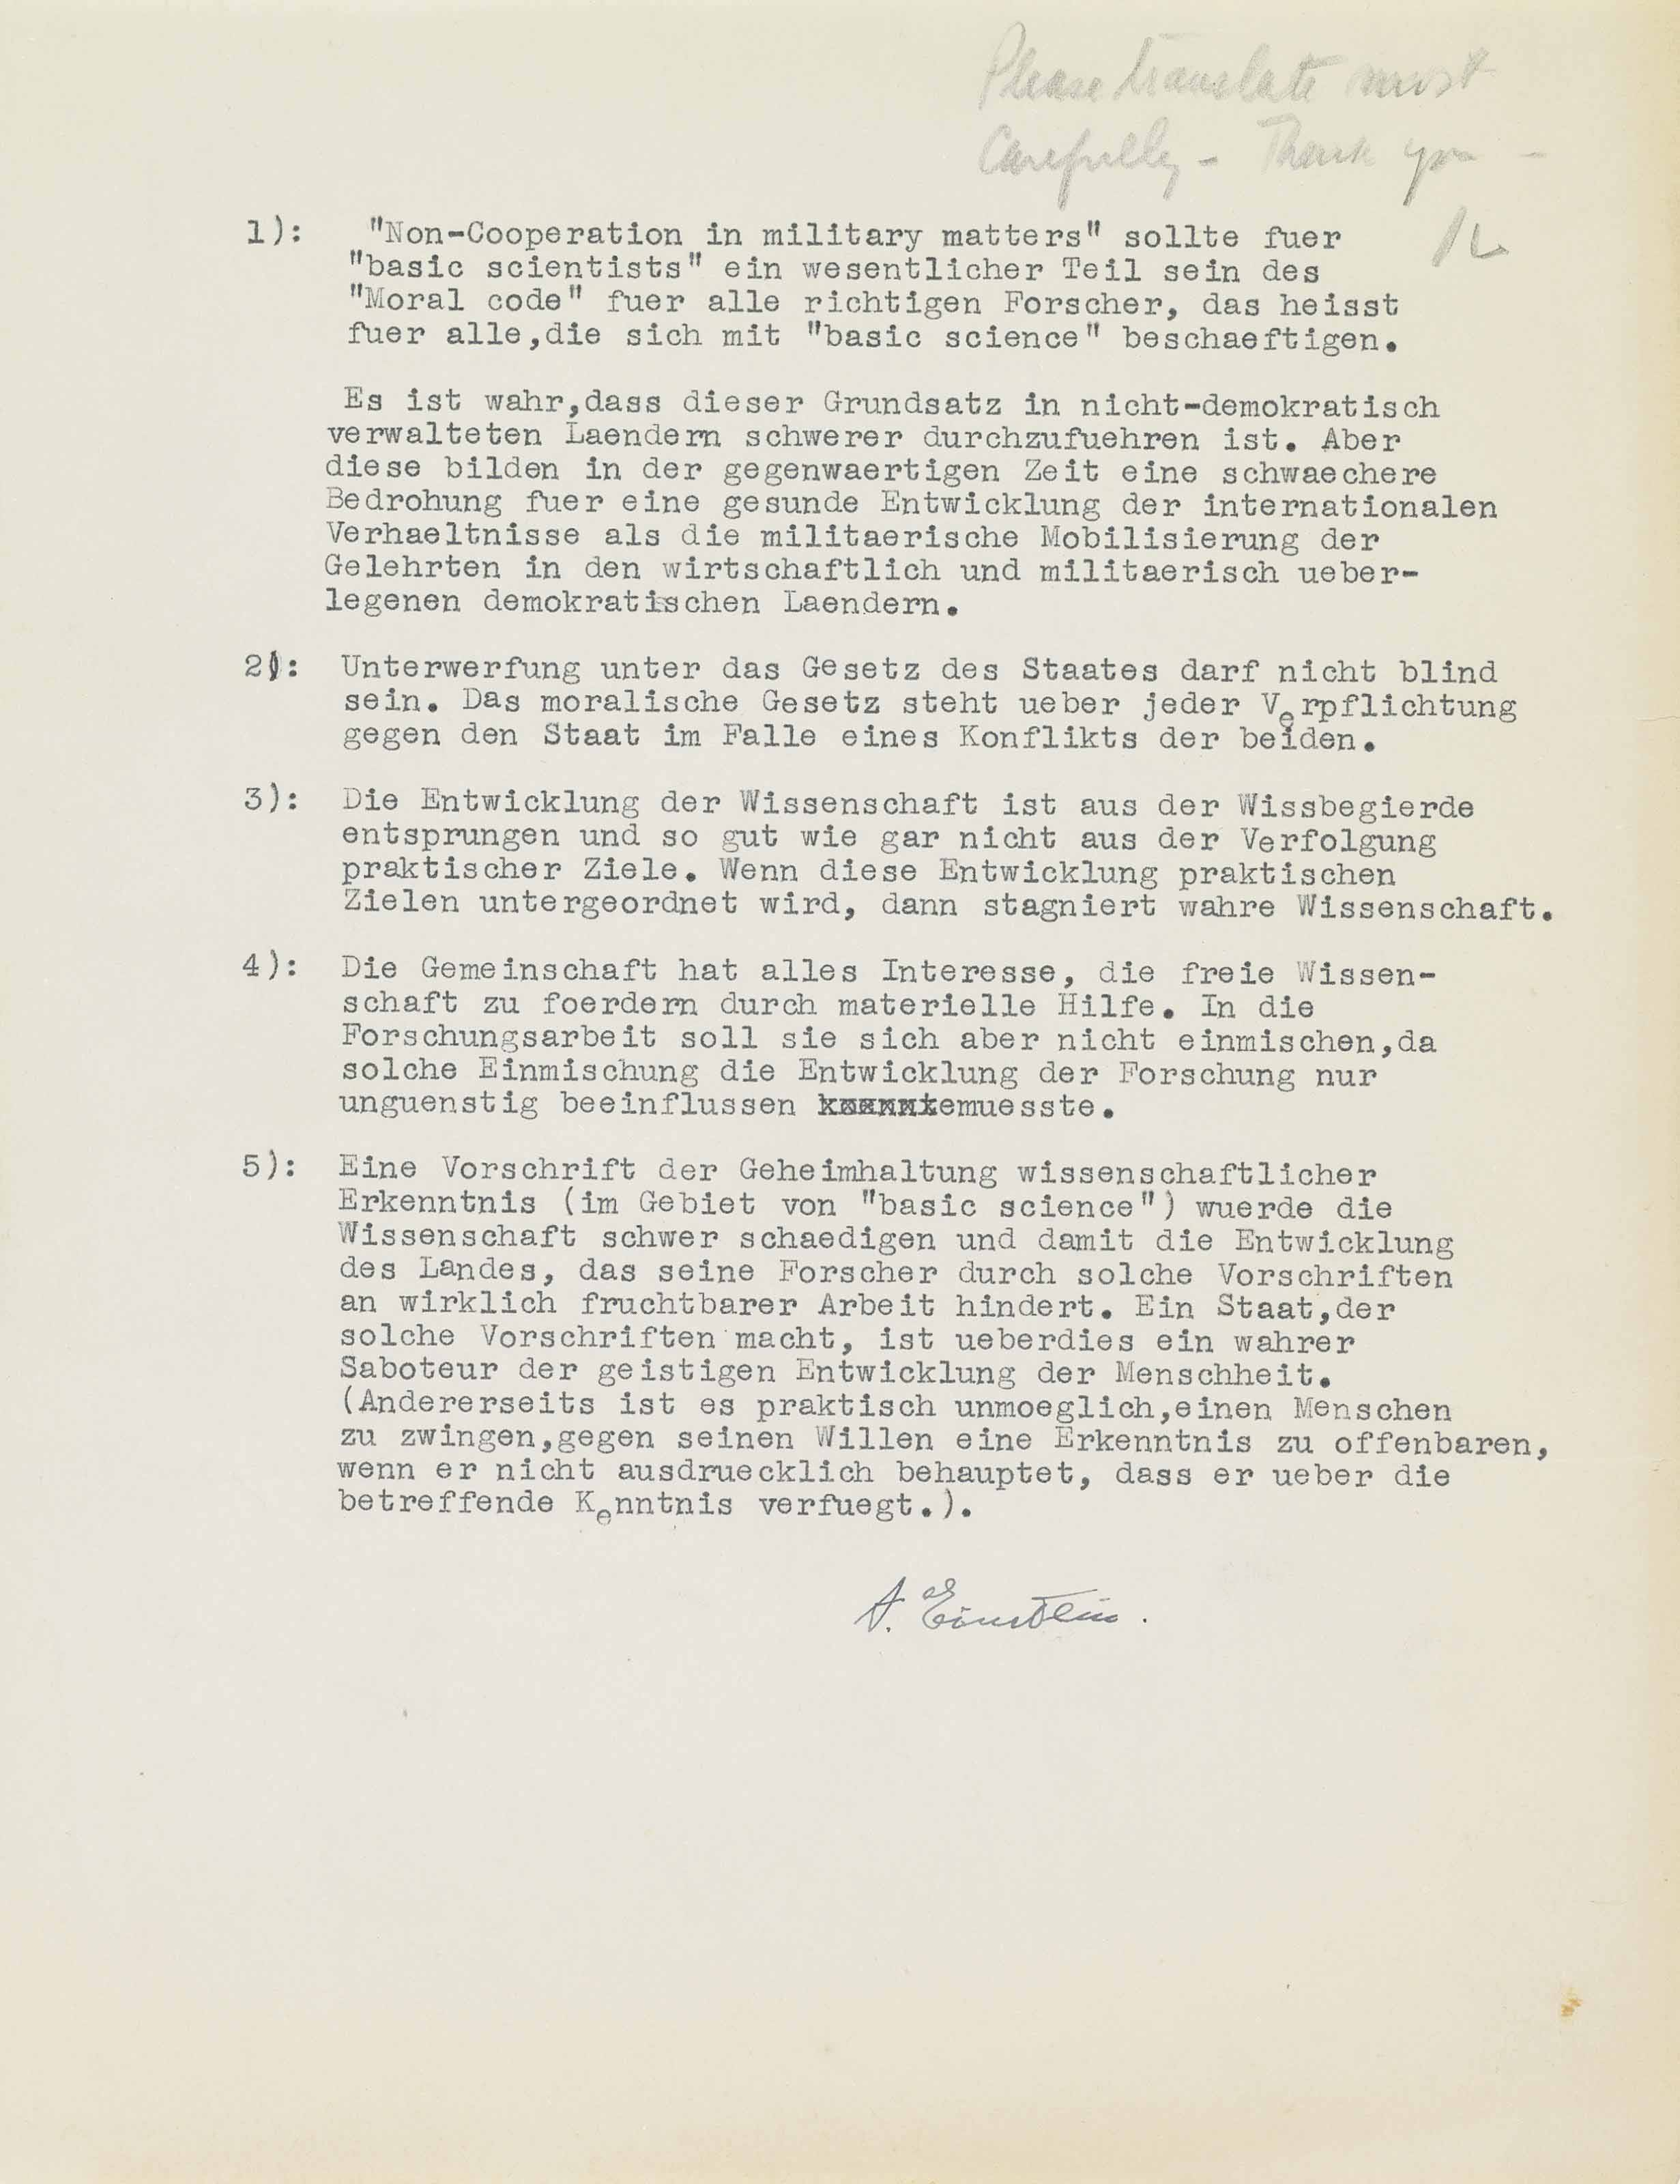 EINSTEIN, Albert (1879-1955). Typed statement signed ('A. Einstein'), setting out an ethical code for scientists, in German, enclosed with a typed letter signed ('A. Einstein') to Jacob Landau of the Overseas News Agency, Princeton, 20 January 1947, in English. Together two pages, 4to (280 x 216mm), pencil annotations. [With:] carbon copies of Landau's letter to Einstein, 15 January 1947, and of the Agency's translation of Einstein's statement; and a typed letter signed by Einstein's secretary, Helen Dukas, suggesting amendments to the translation.